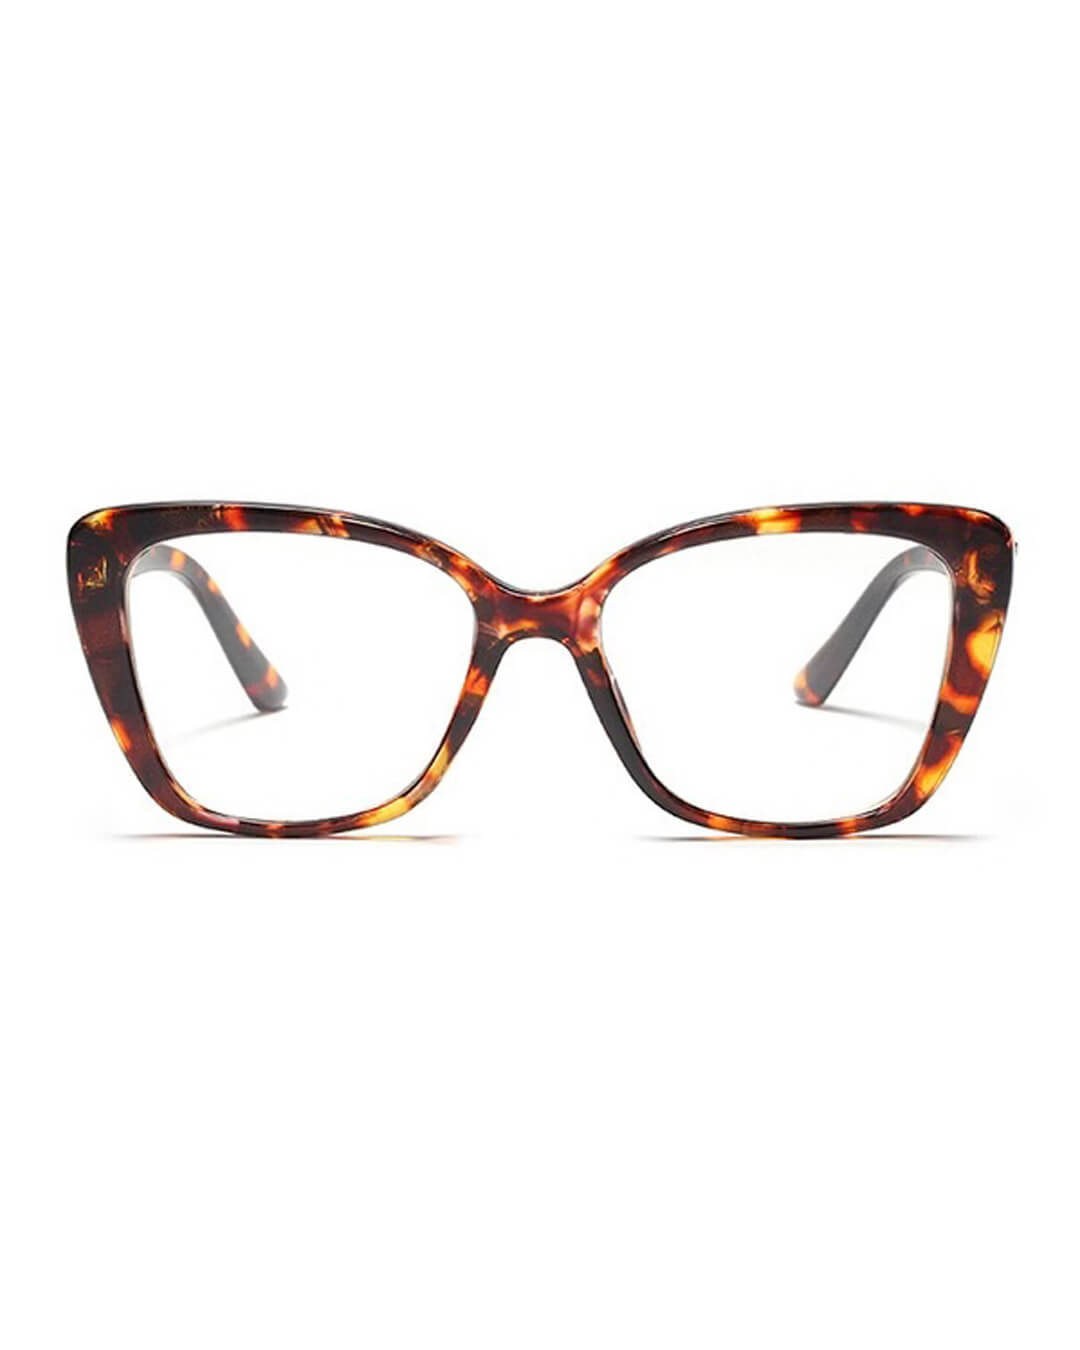 Tiffany-Opticals--Tortoise